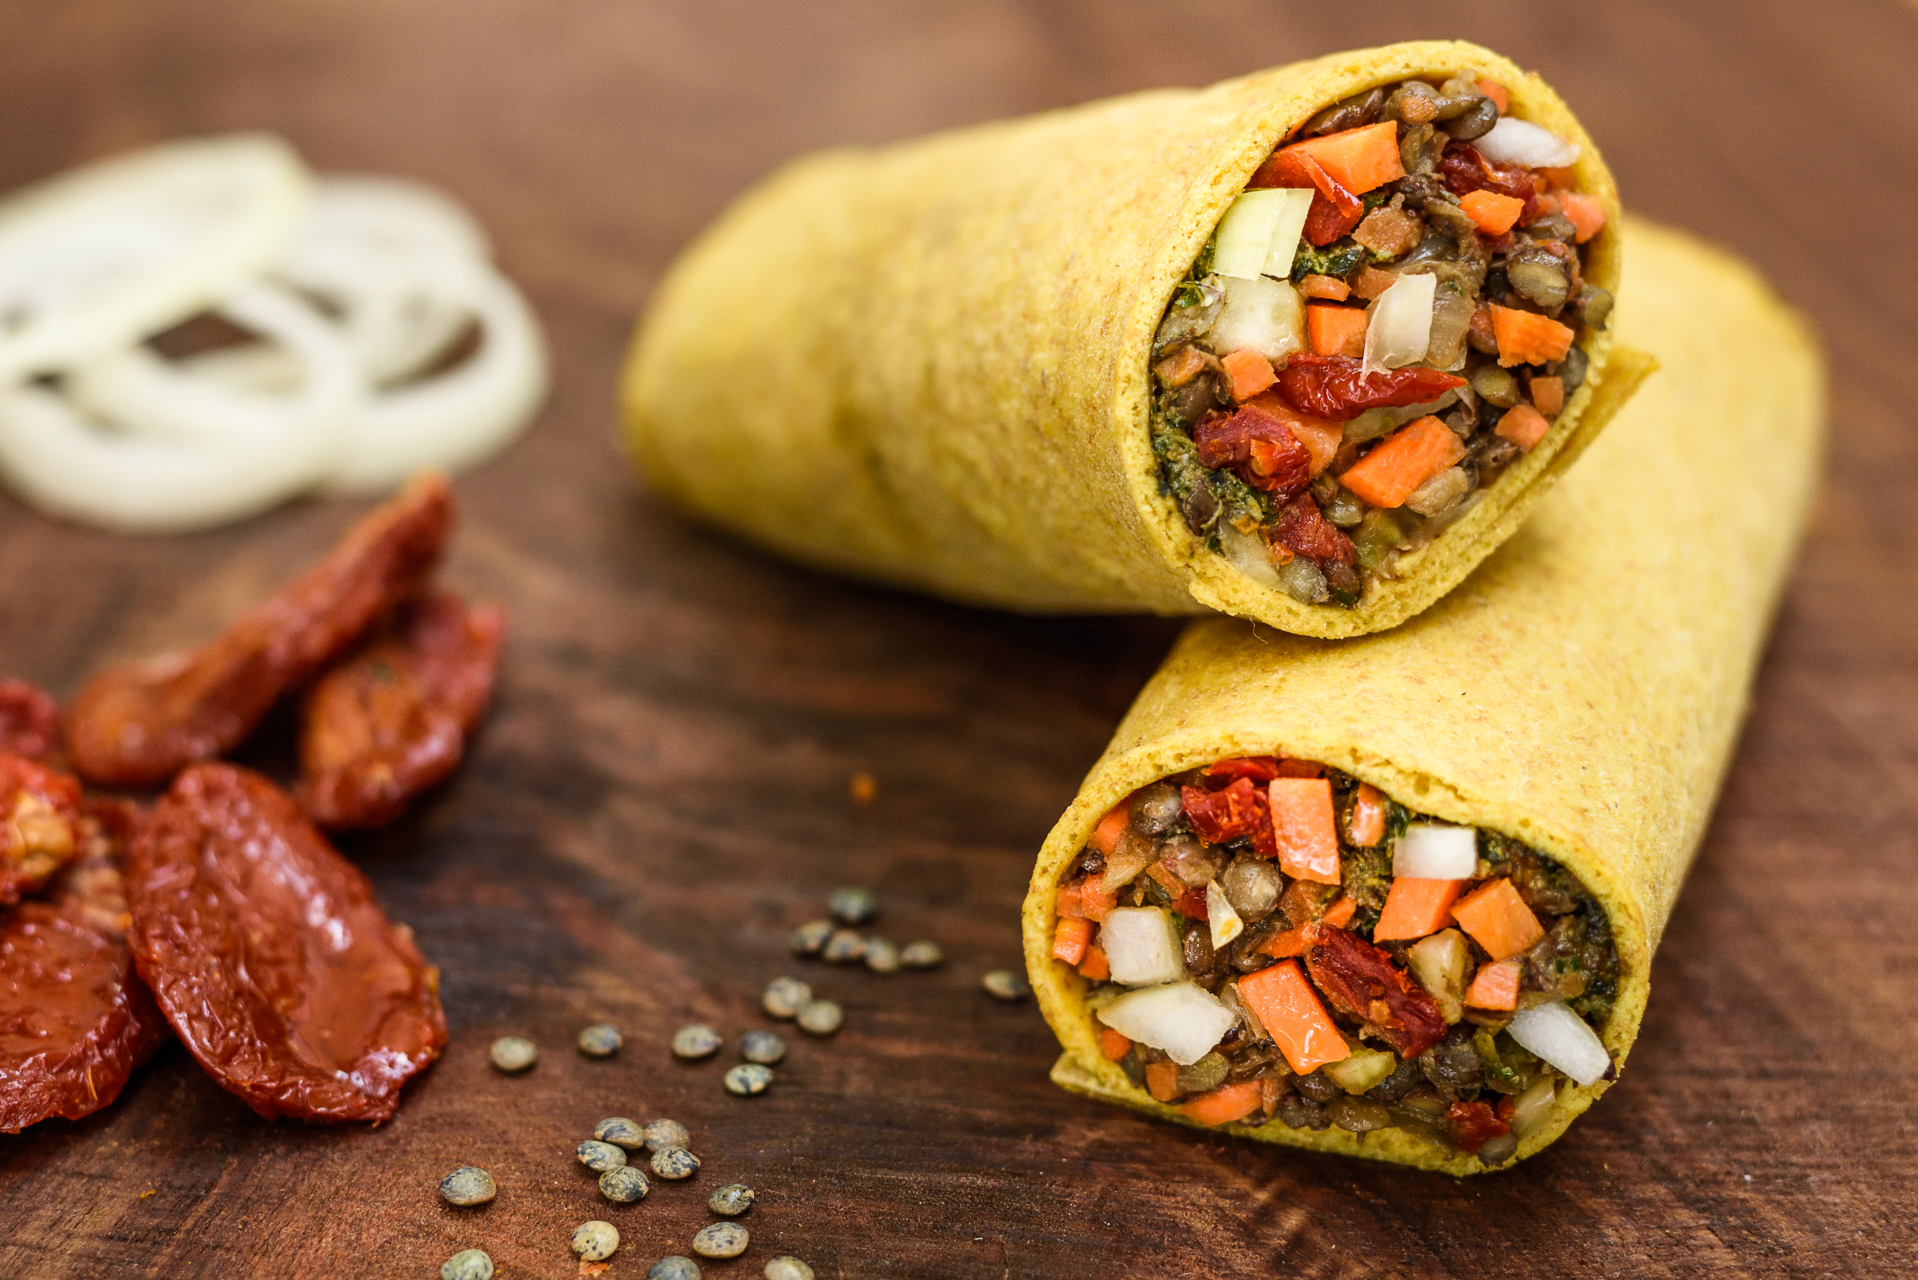 Copy of Lentil & Basil Wrap